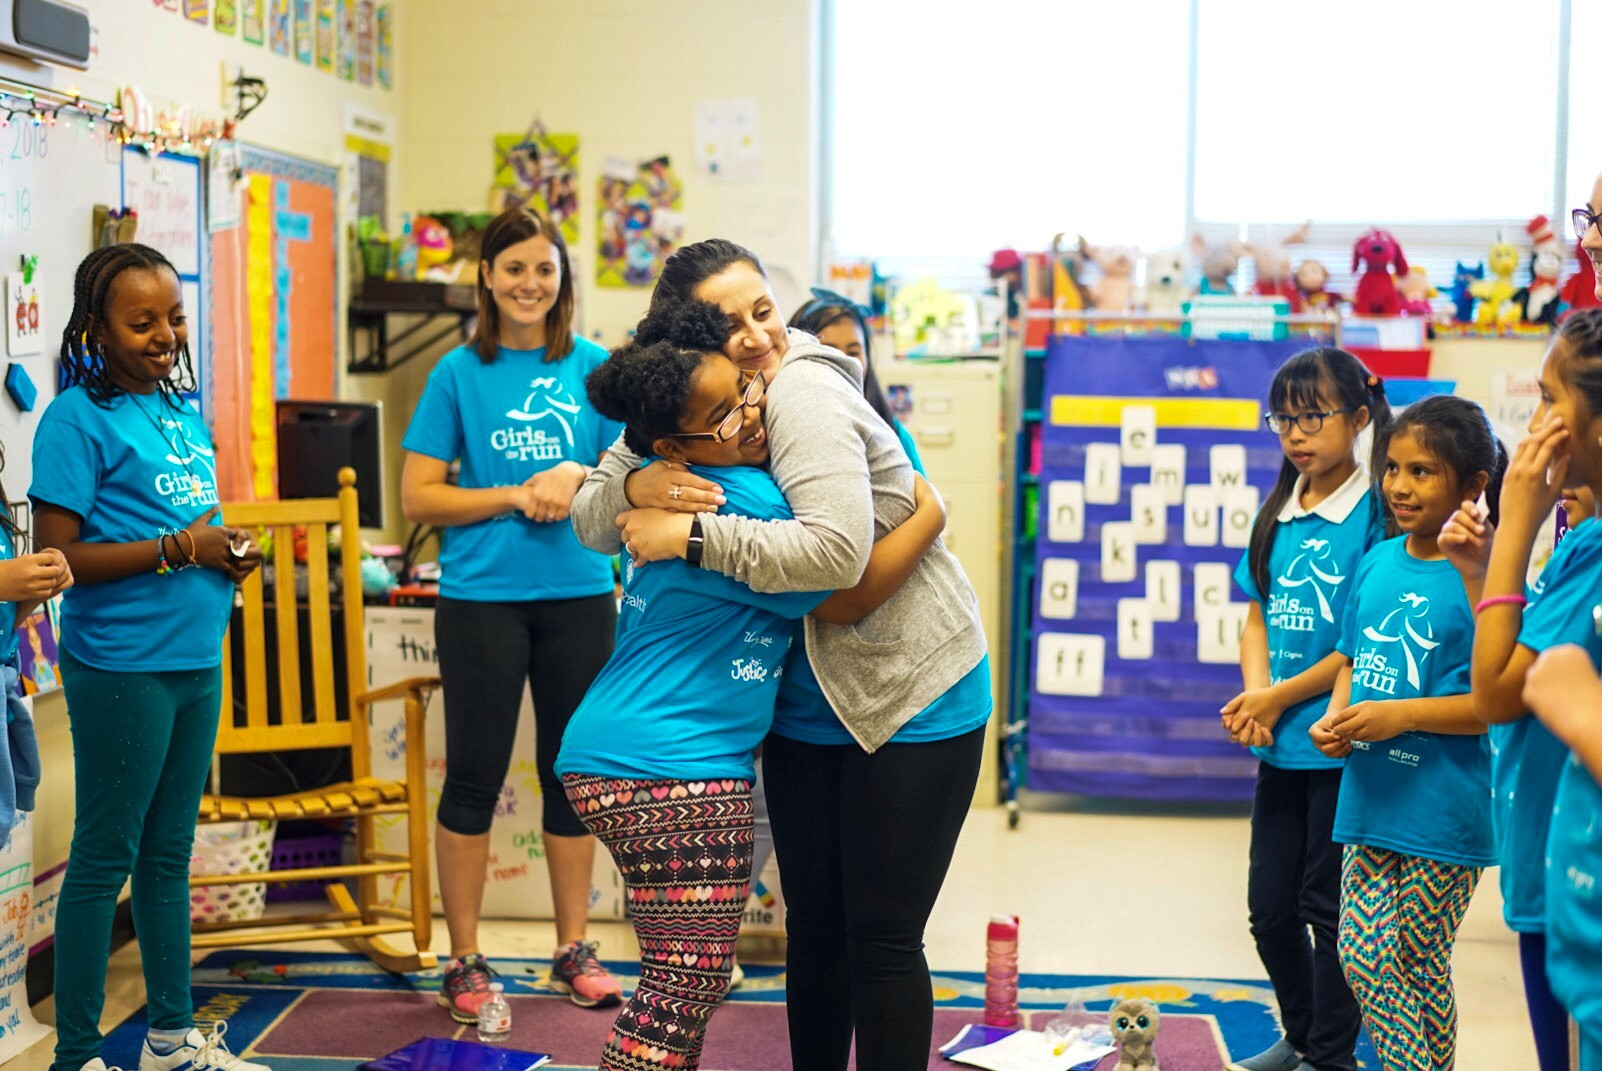 program leader hugging a member while other girls circle around them